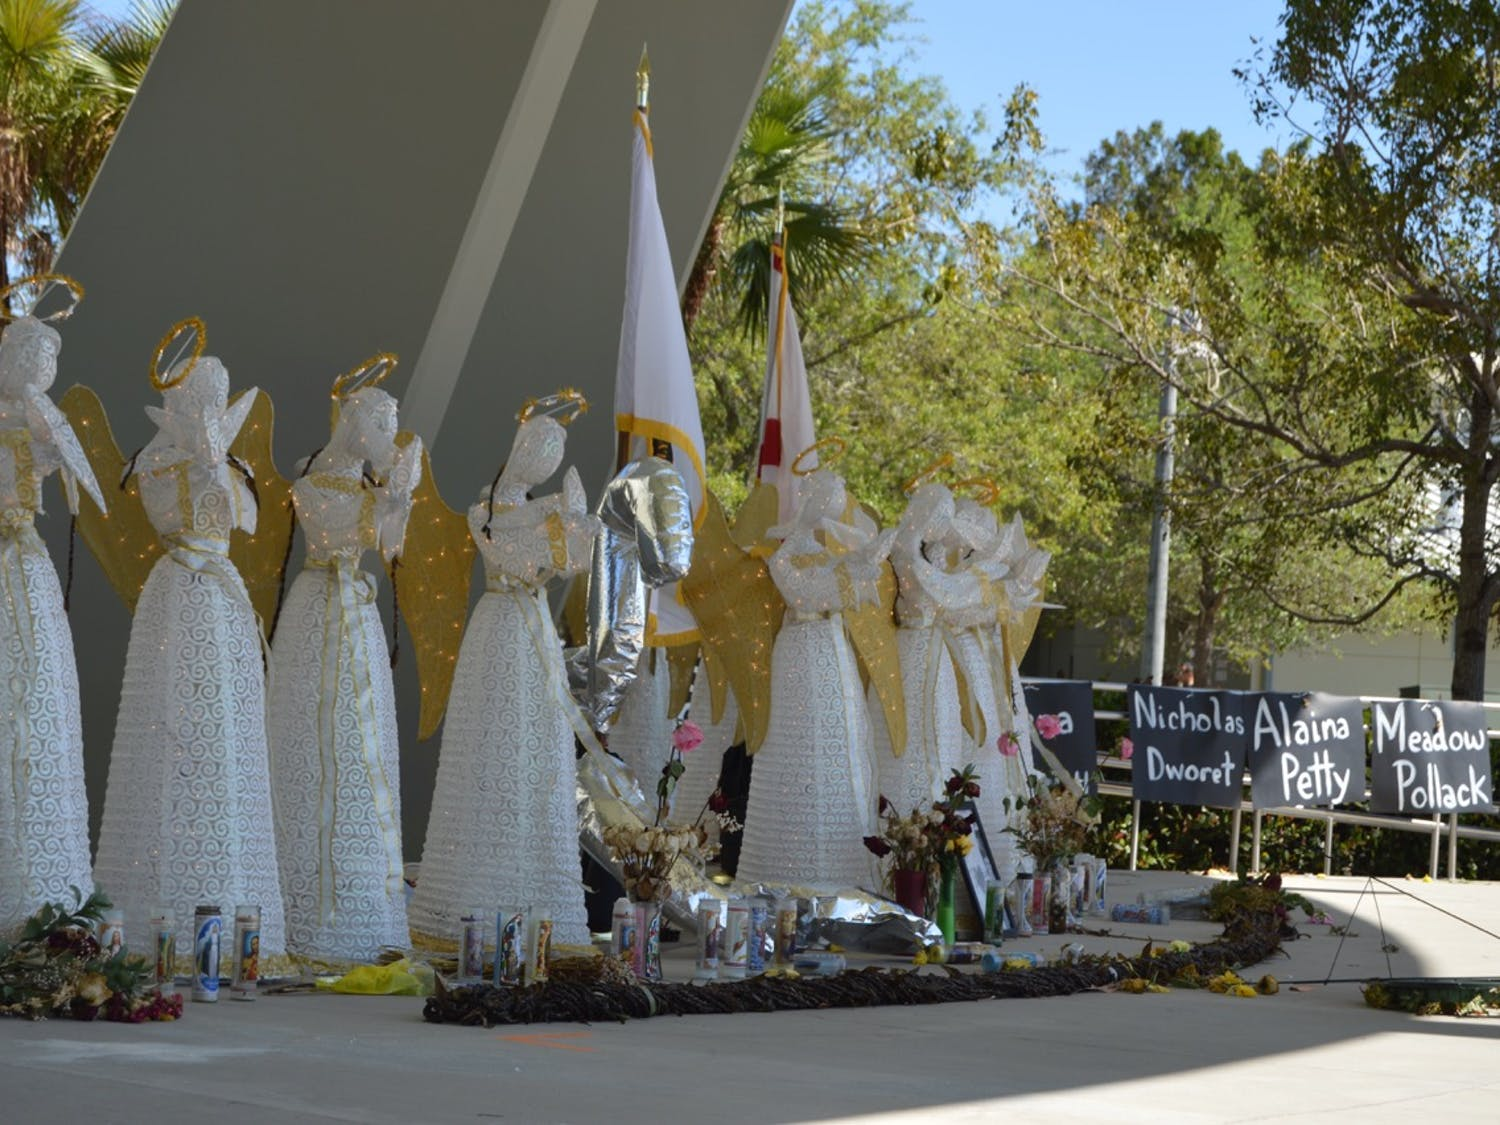 Seventeen angel statues face outward at the memorial at Pine Trails Park in Parkland, Florida. The statues were put up for the vigil the day after the shooting.